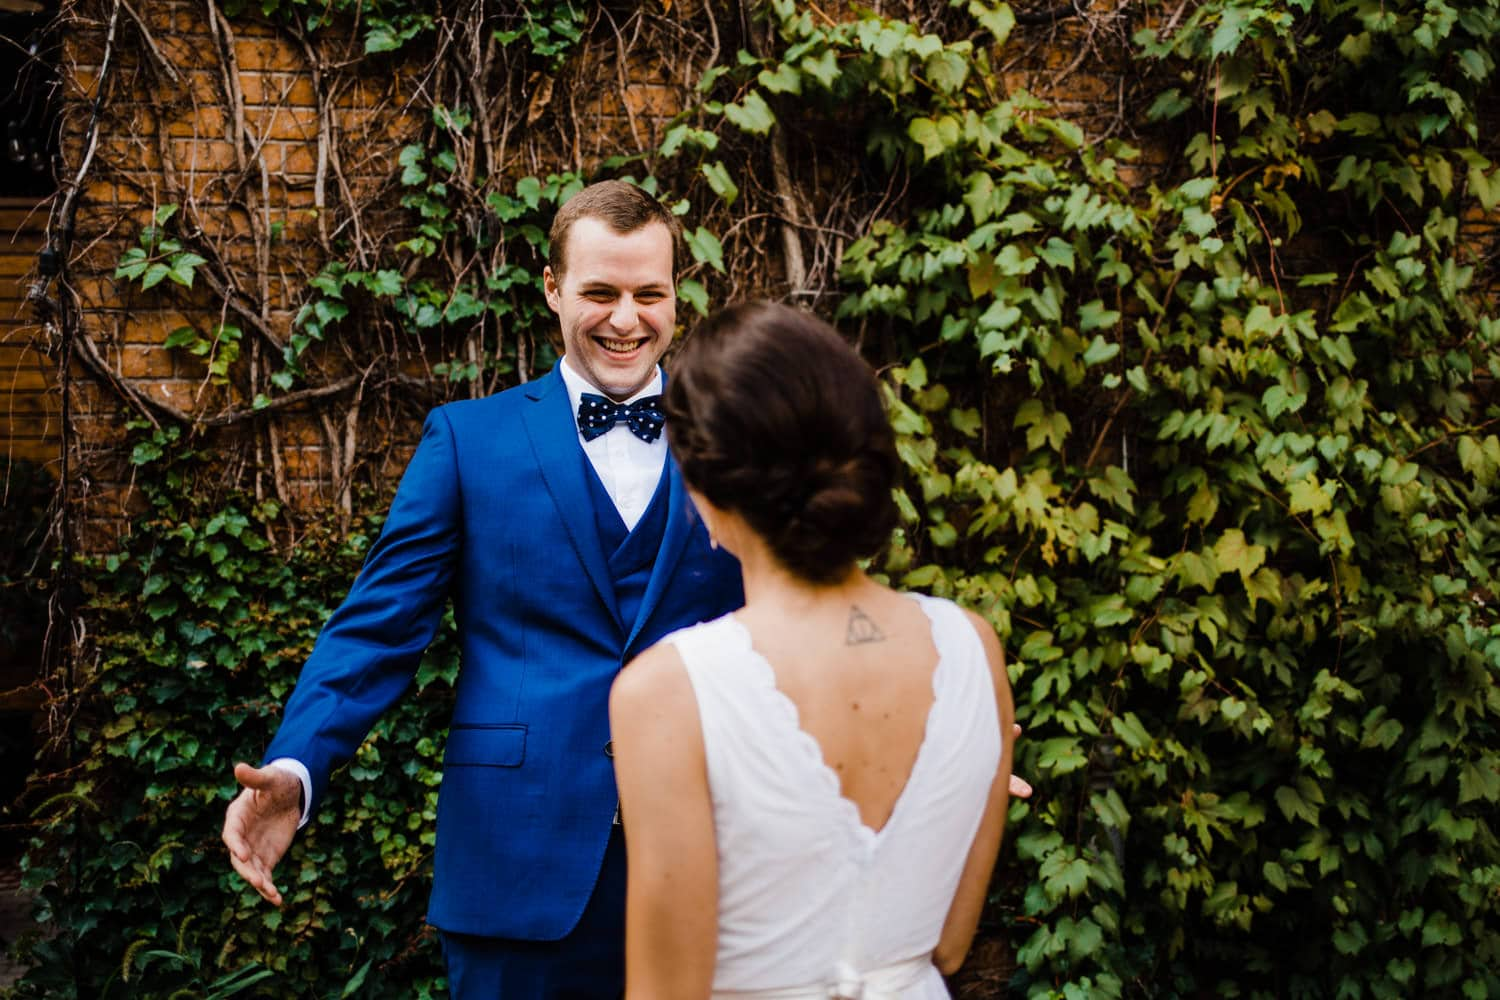 groom sees his bride during first look - ottawa wedding photographer - carley teresa photography